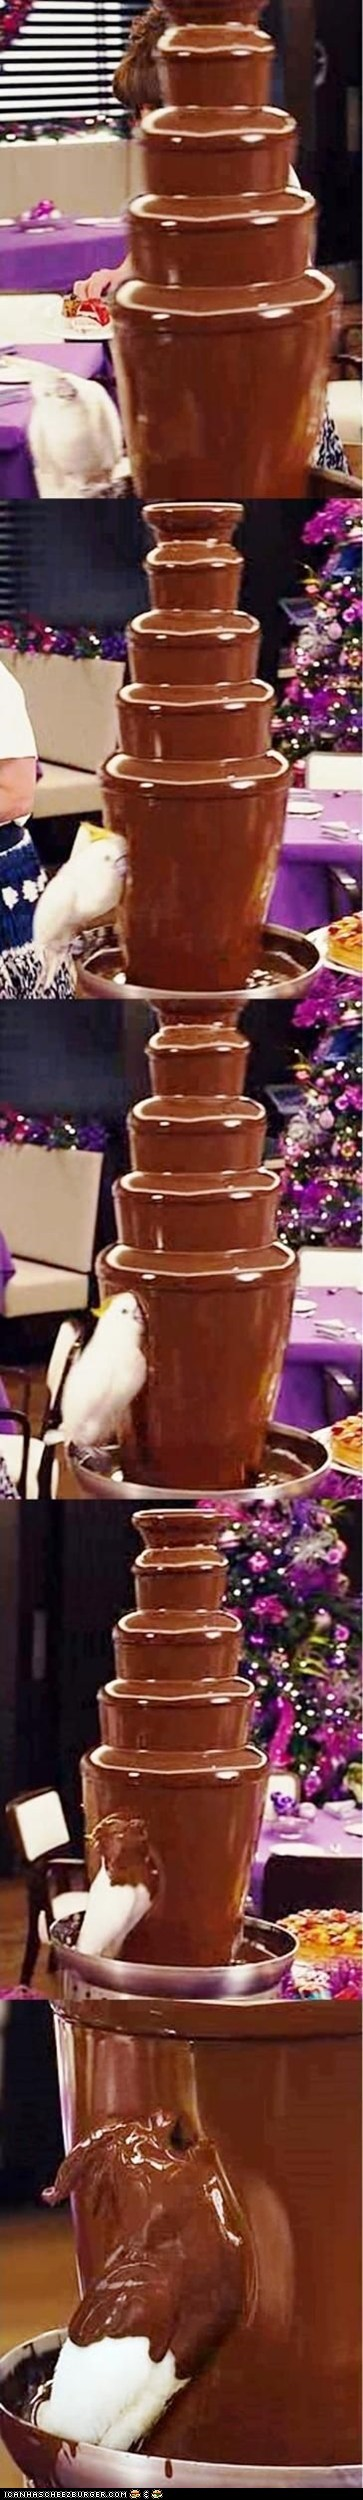 best of the week birds chocolate cockatiel fondue fondue fountain fountain multipanel omg - 5904161536